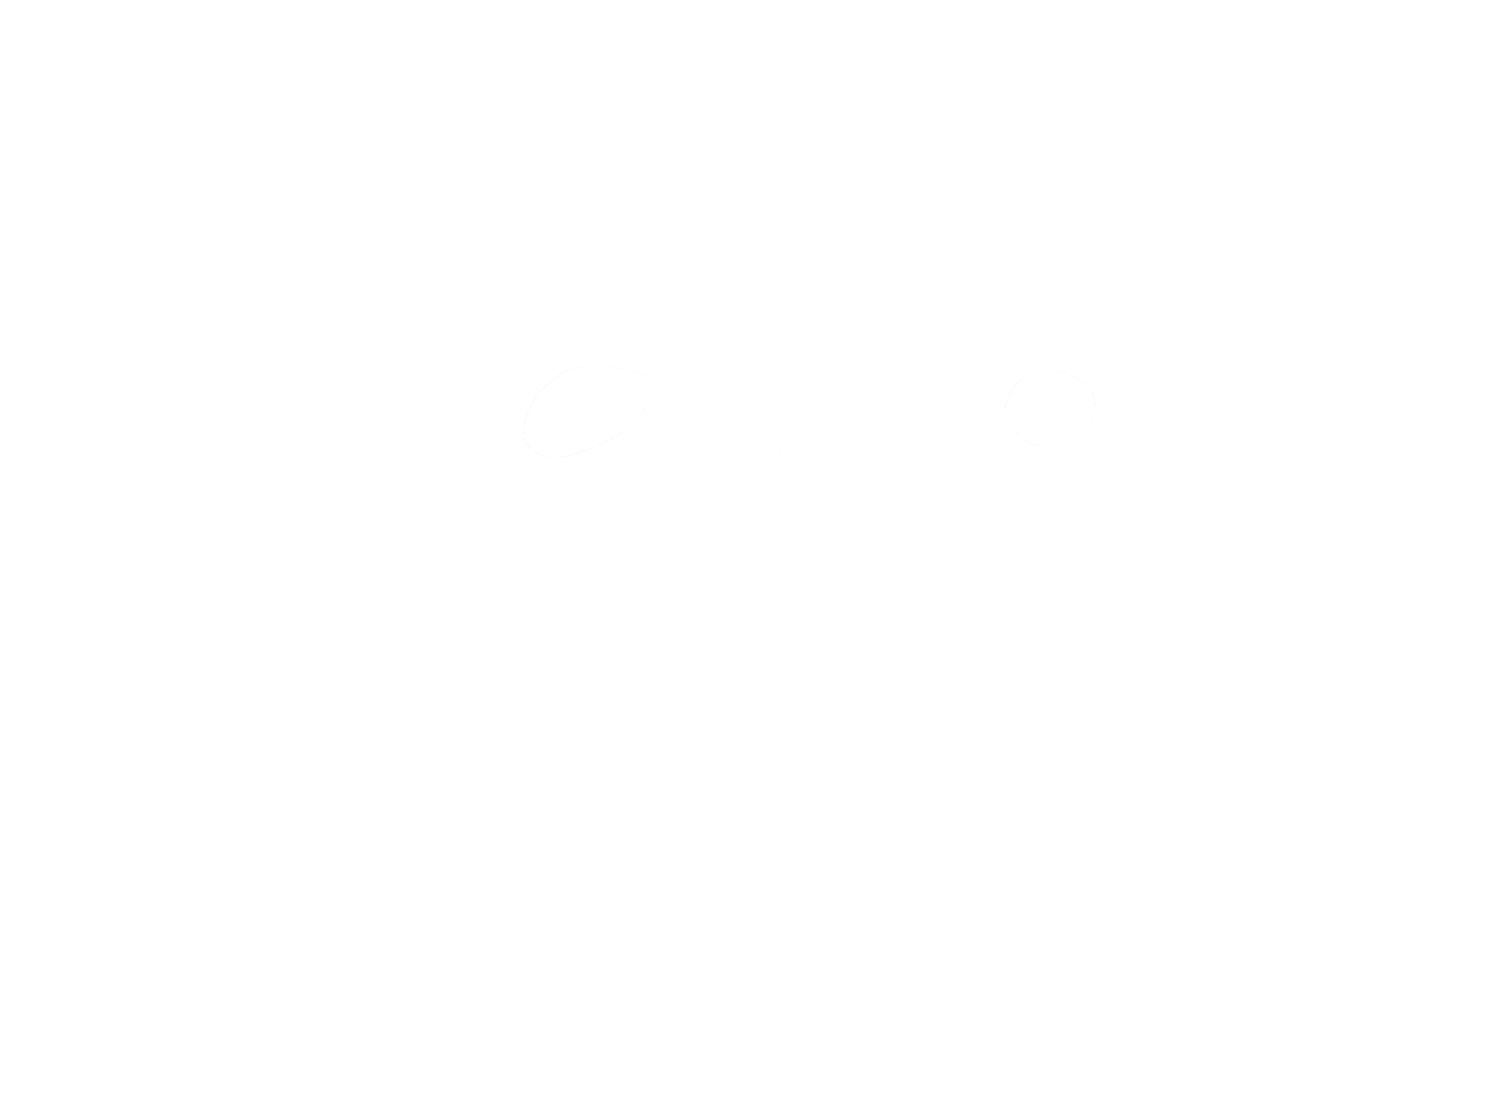 Watson Wedding Photography | Wedding Photography Throughout The UK